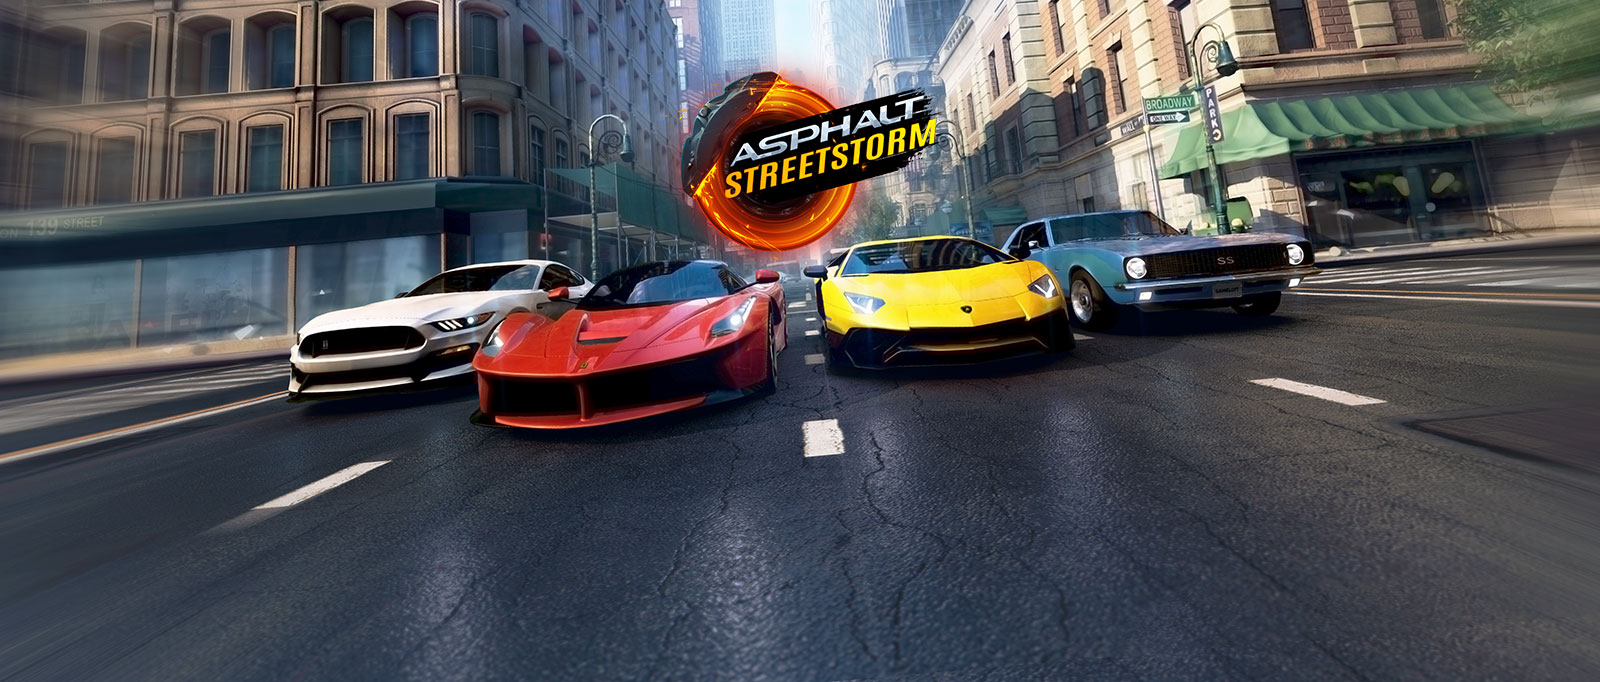 Asphalt Street Storm Racing, Gods of Rome, Dungeon Hunter Champions, Gangstar Vegas, Brothers in Arms 3, Android Racing Games 2019,Gameloft,Android Games,Best Raching Games,Top Android Games by Gameloft,HD Android Games